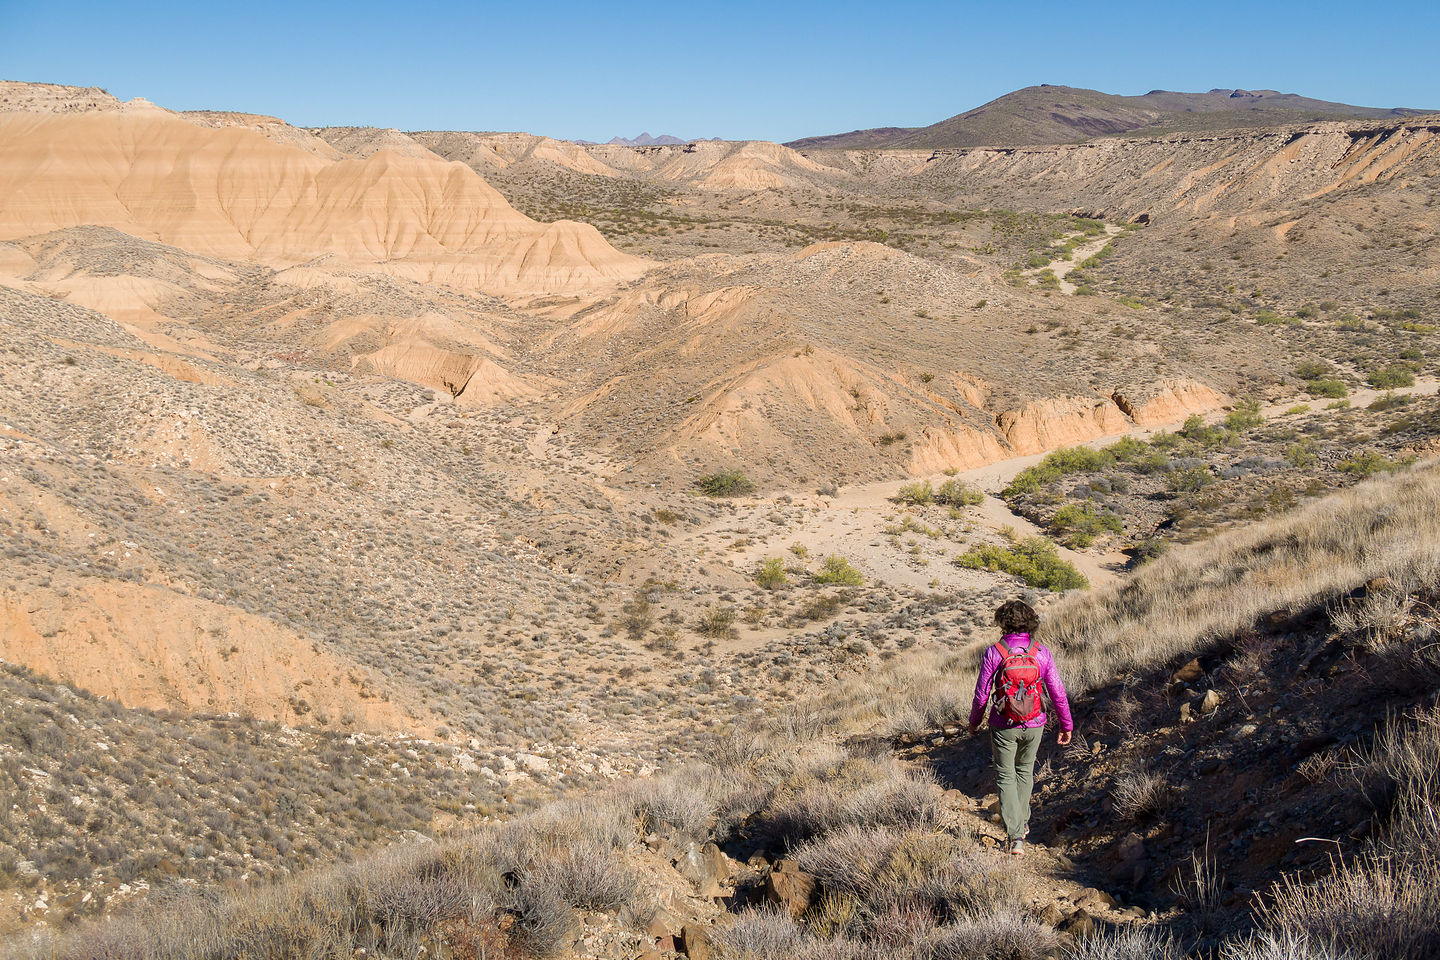 Lolo hiking to Piute Spring